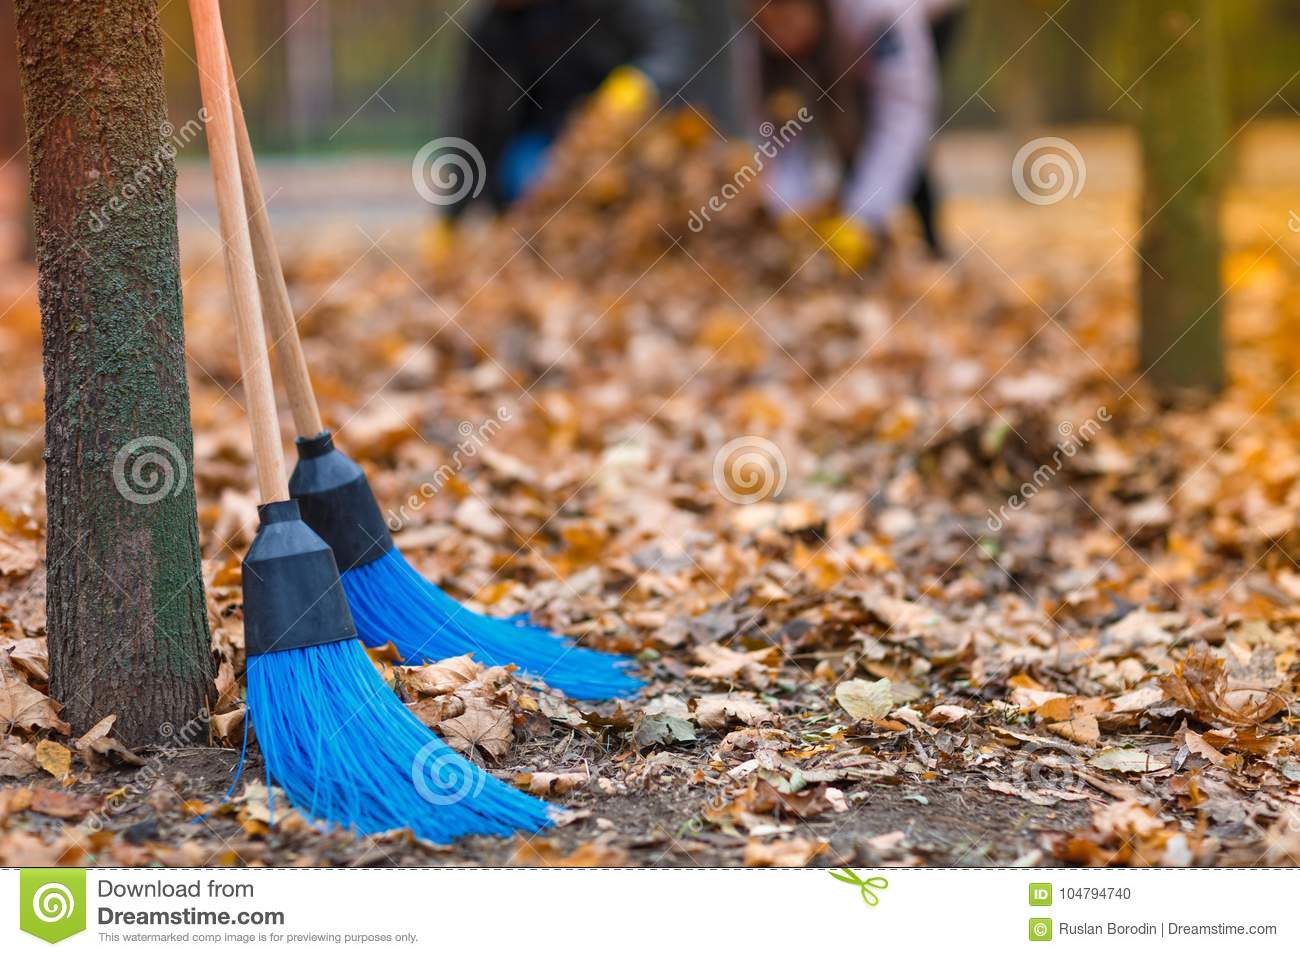 Two Brooms For Cleaning Leaves, In An Autumn Park, Against The